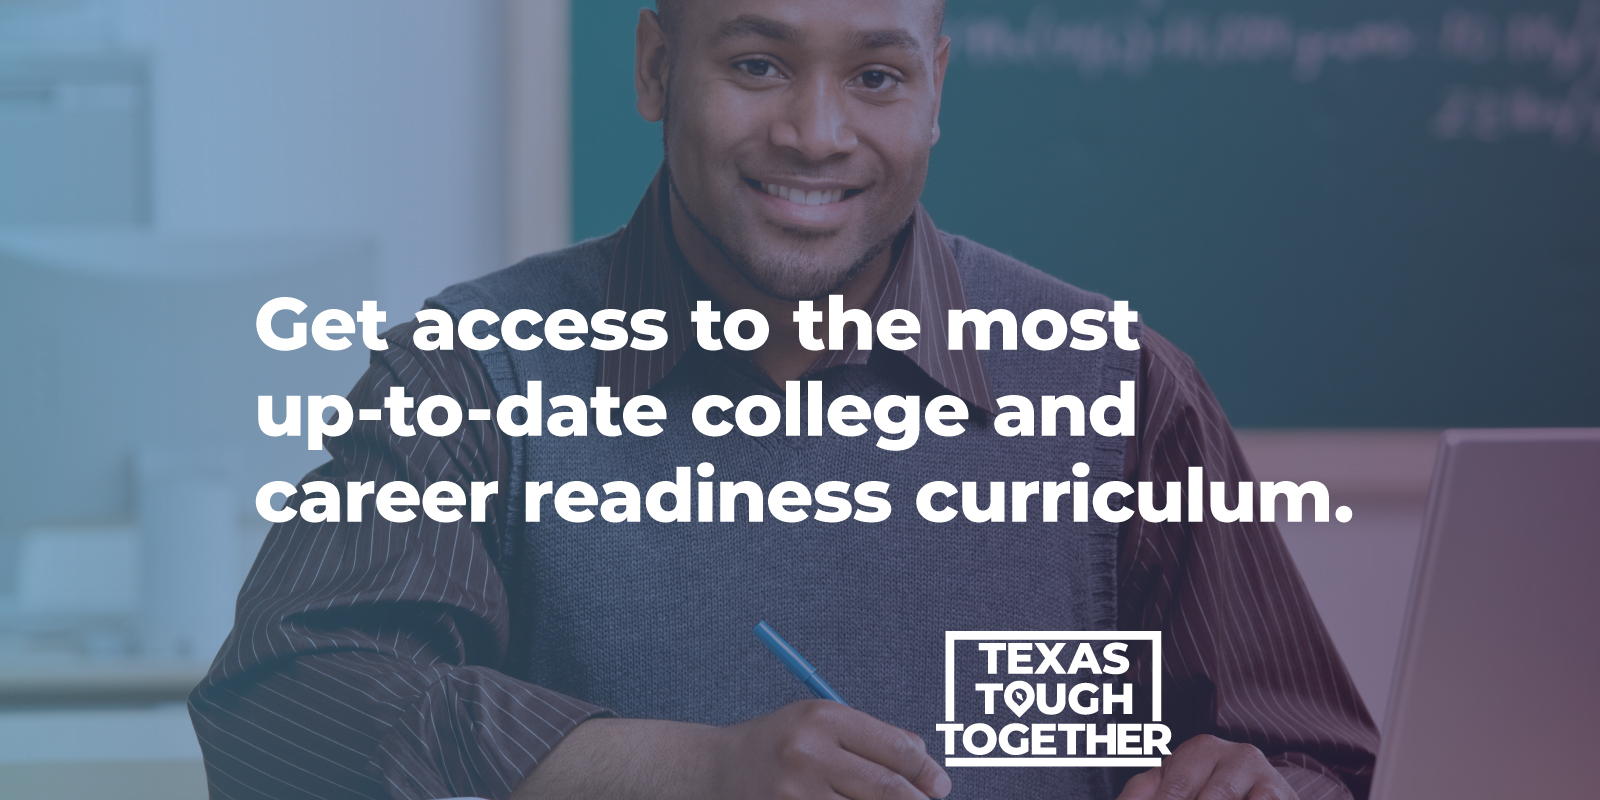 Get access to the most up-to-date college and career readiness curriculum.